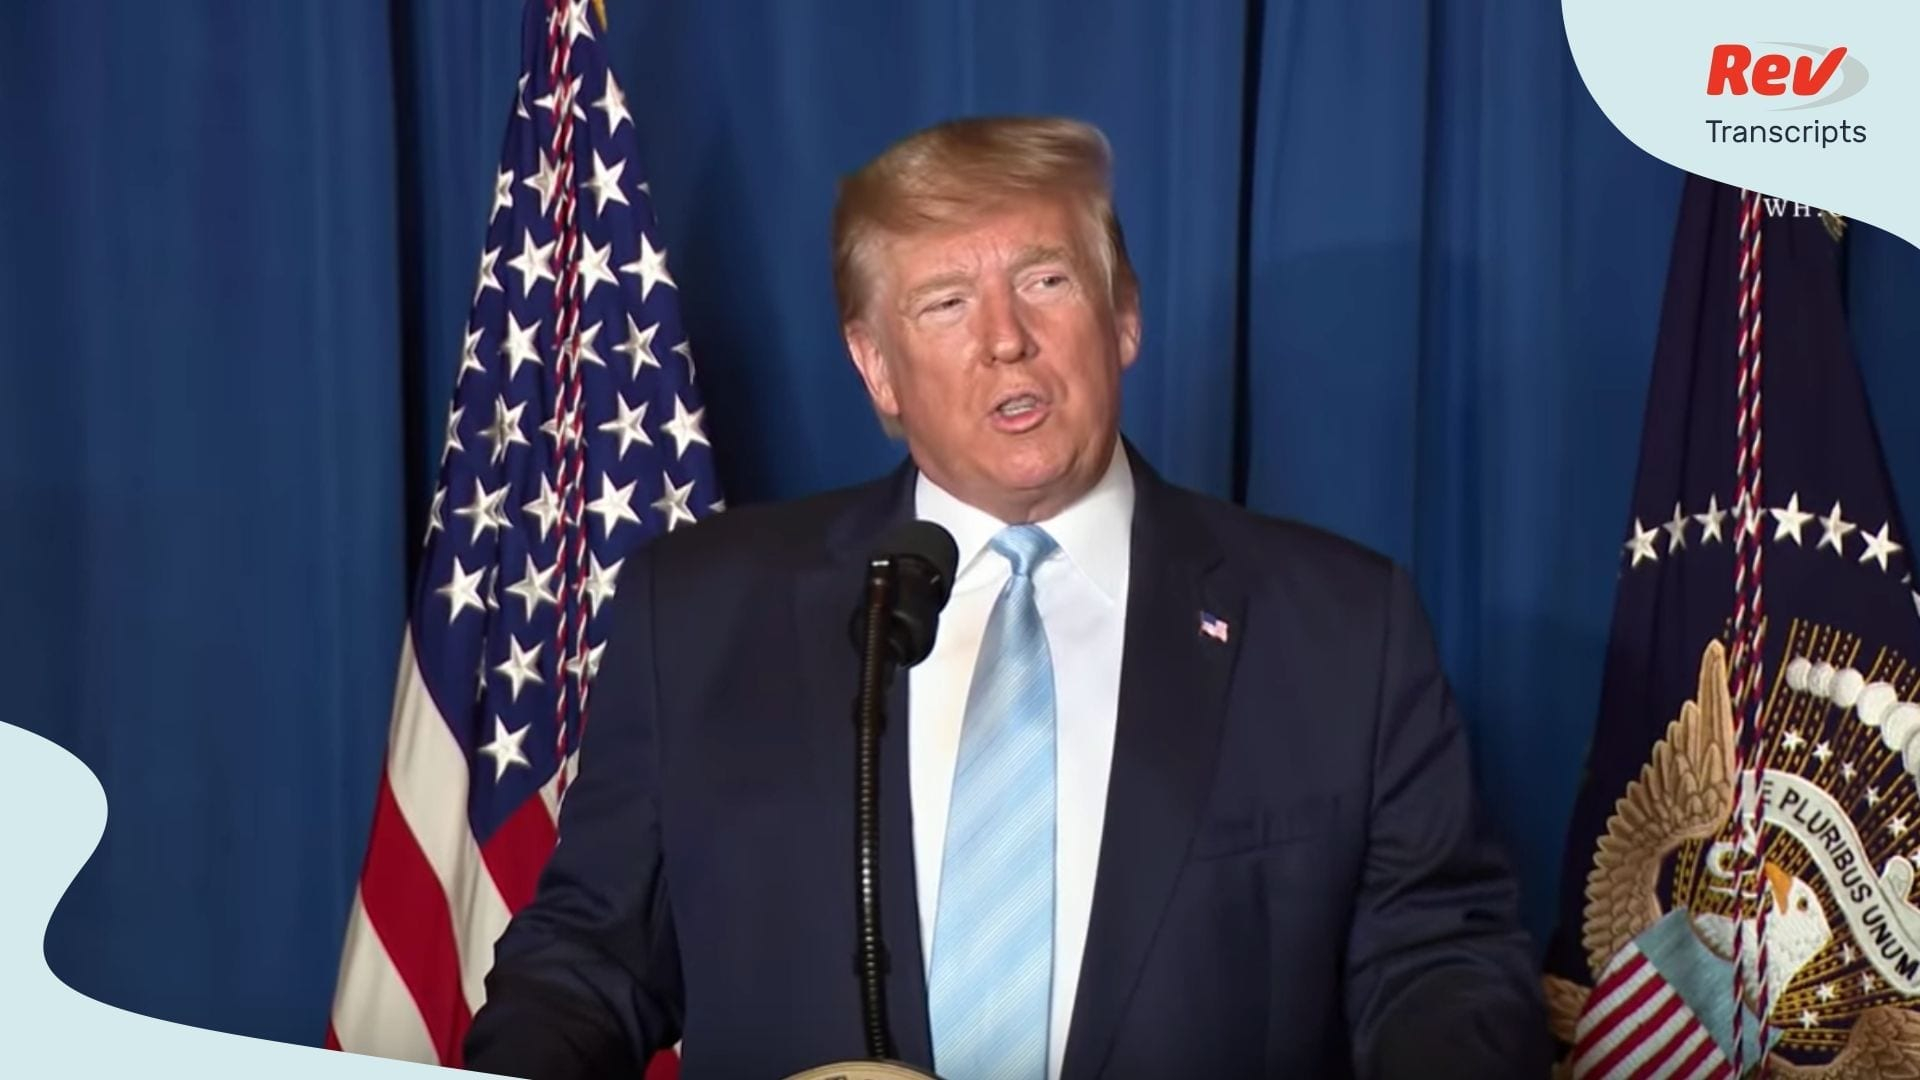 Donald Trump Iran Statement Speech Transcript Trump Orders Strike on Qasem Soleimani